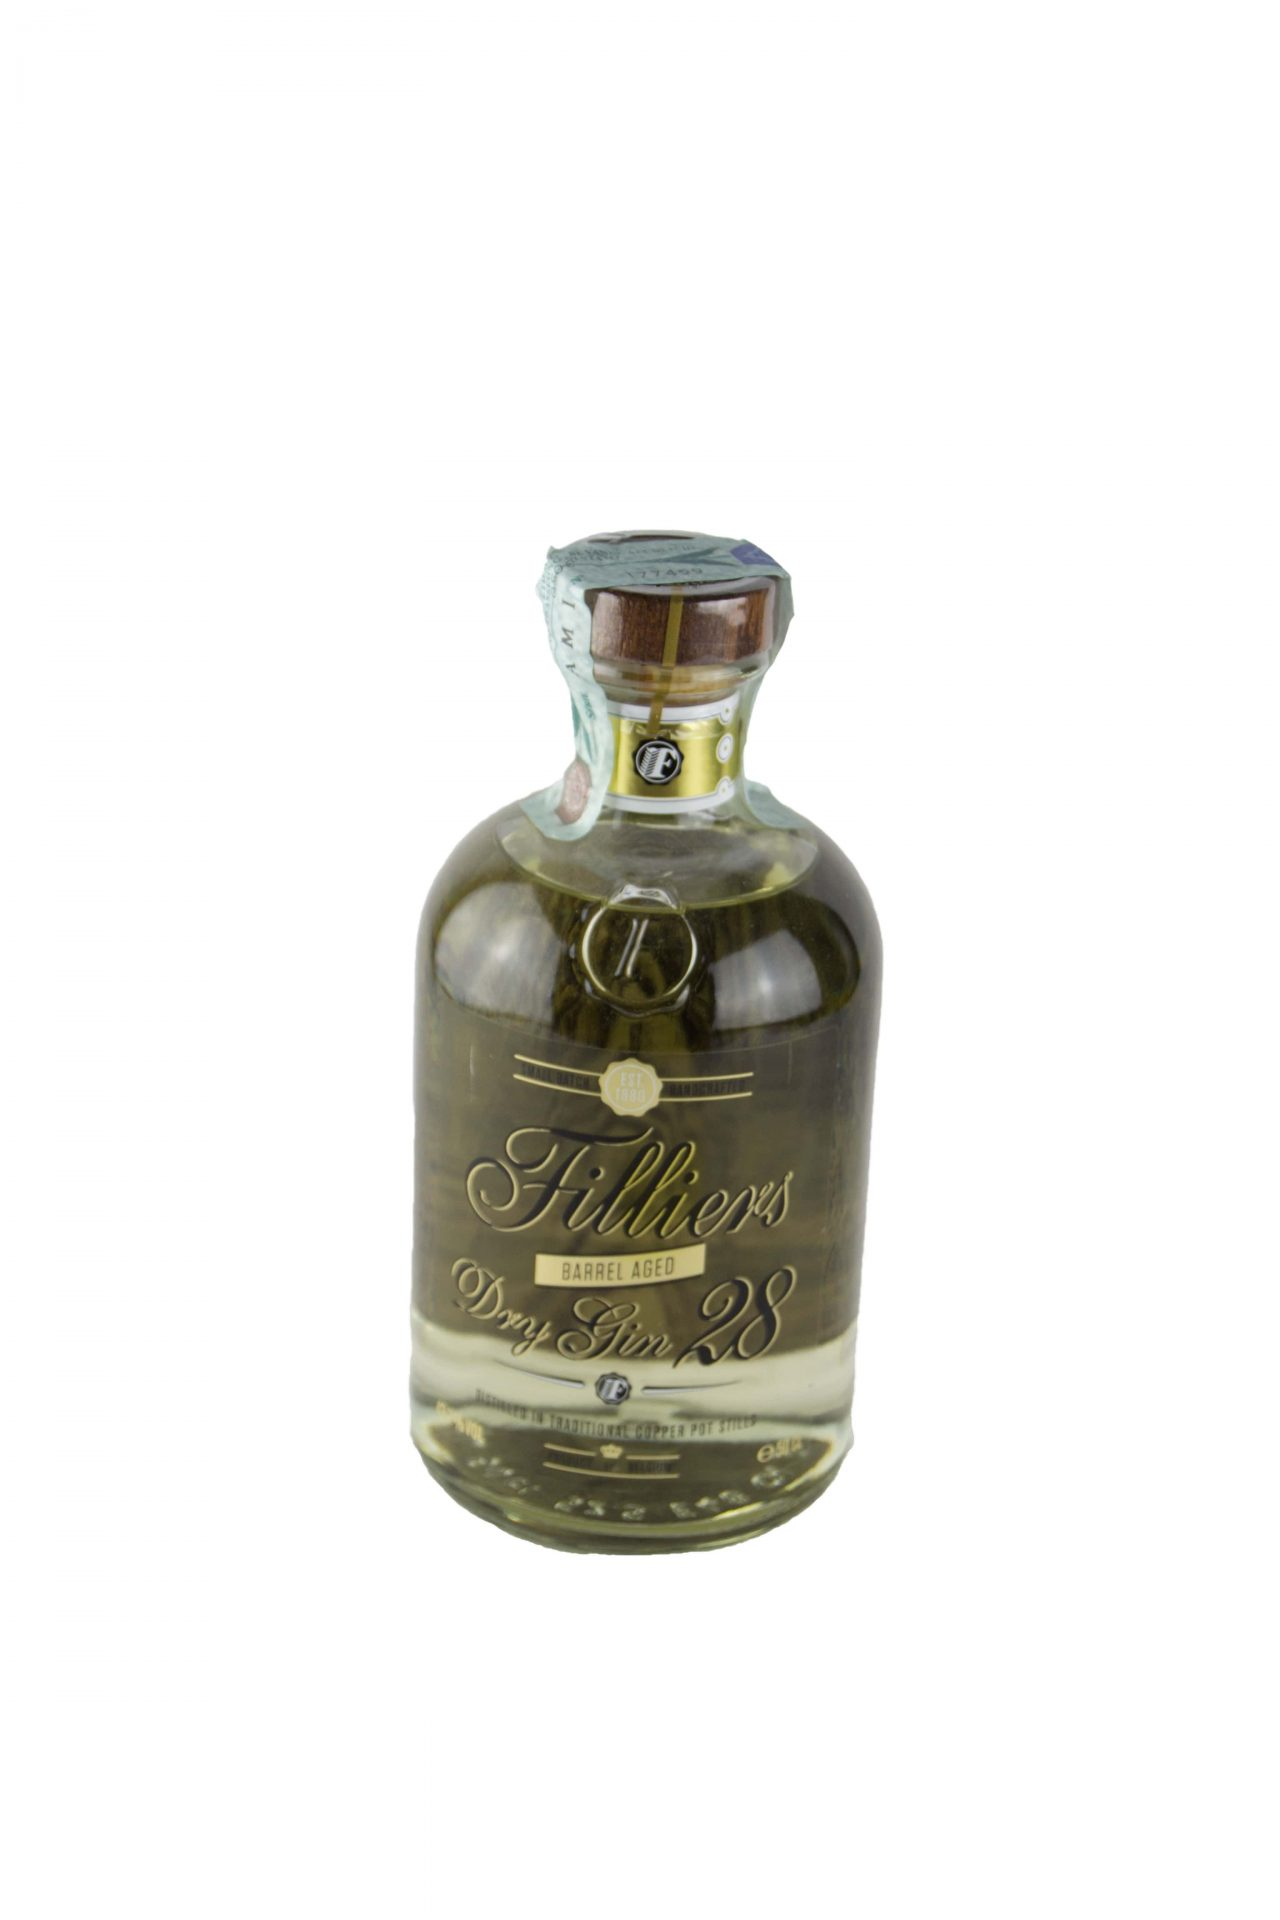 Filliers Dry Gin 28 Barrel Aged – Filliers